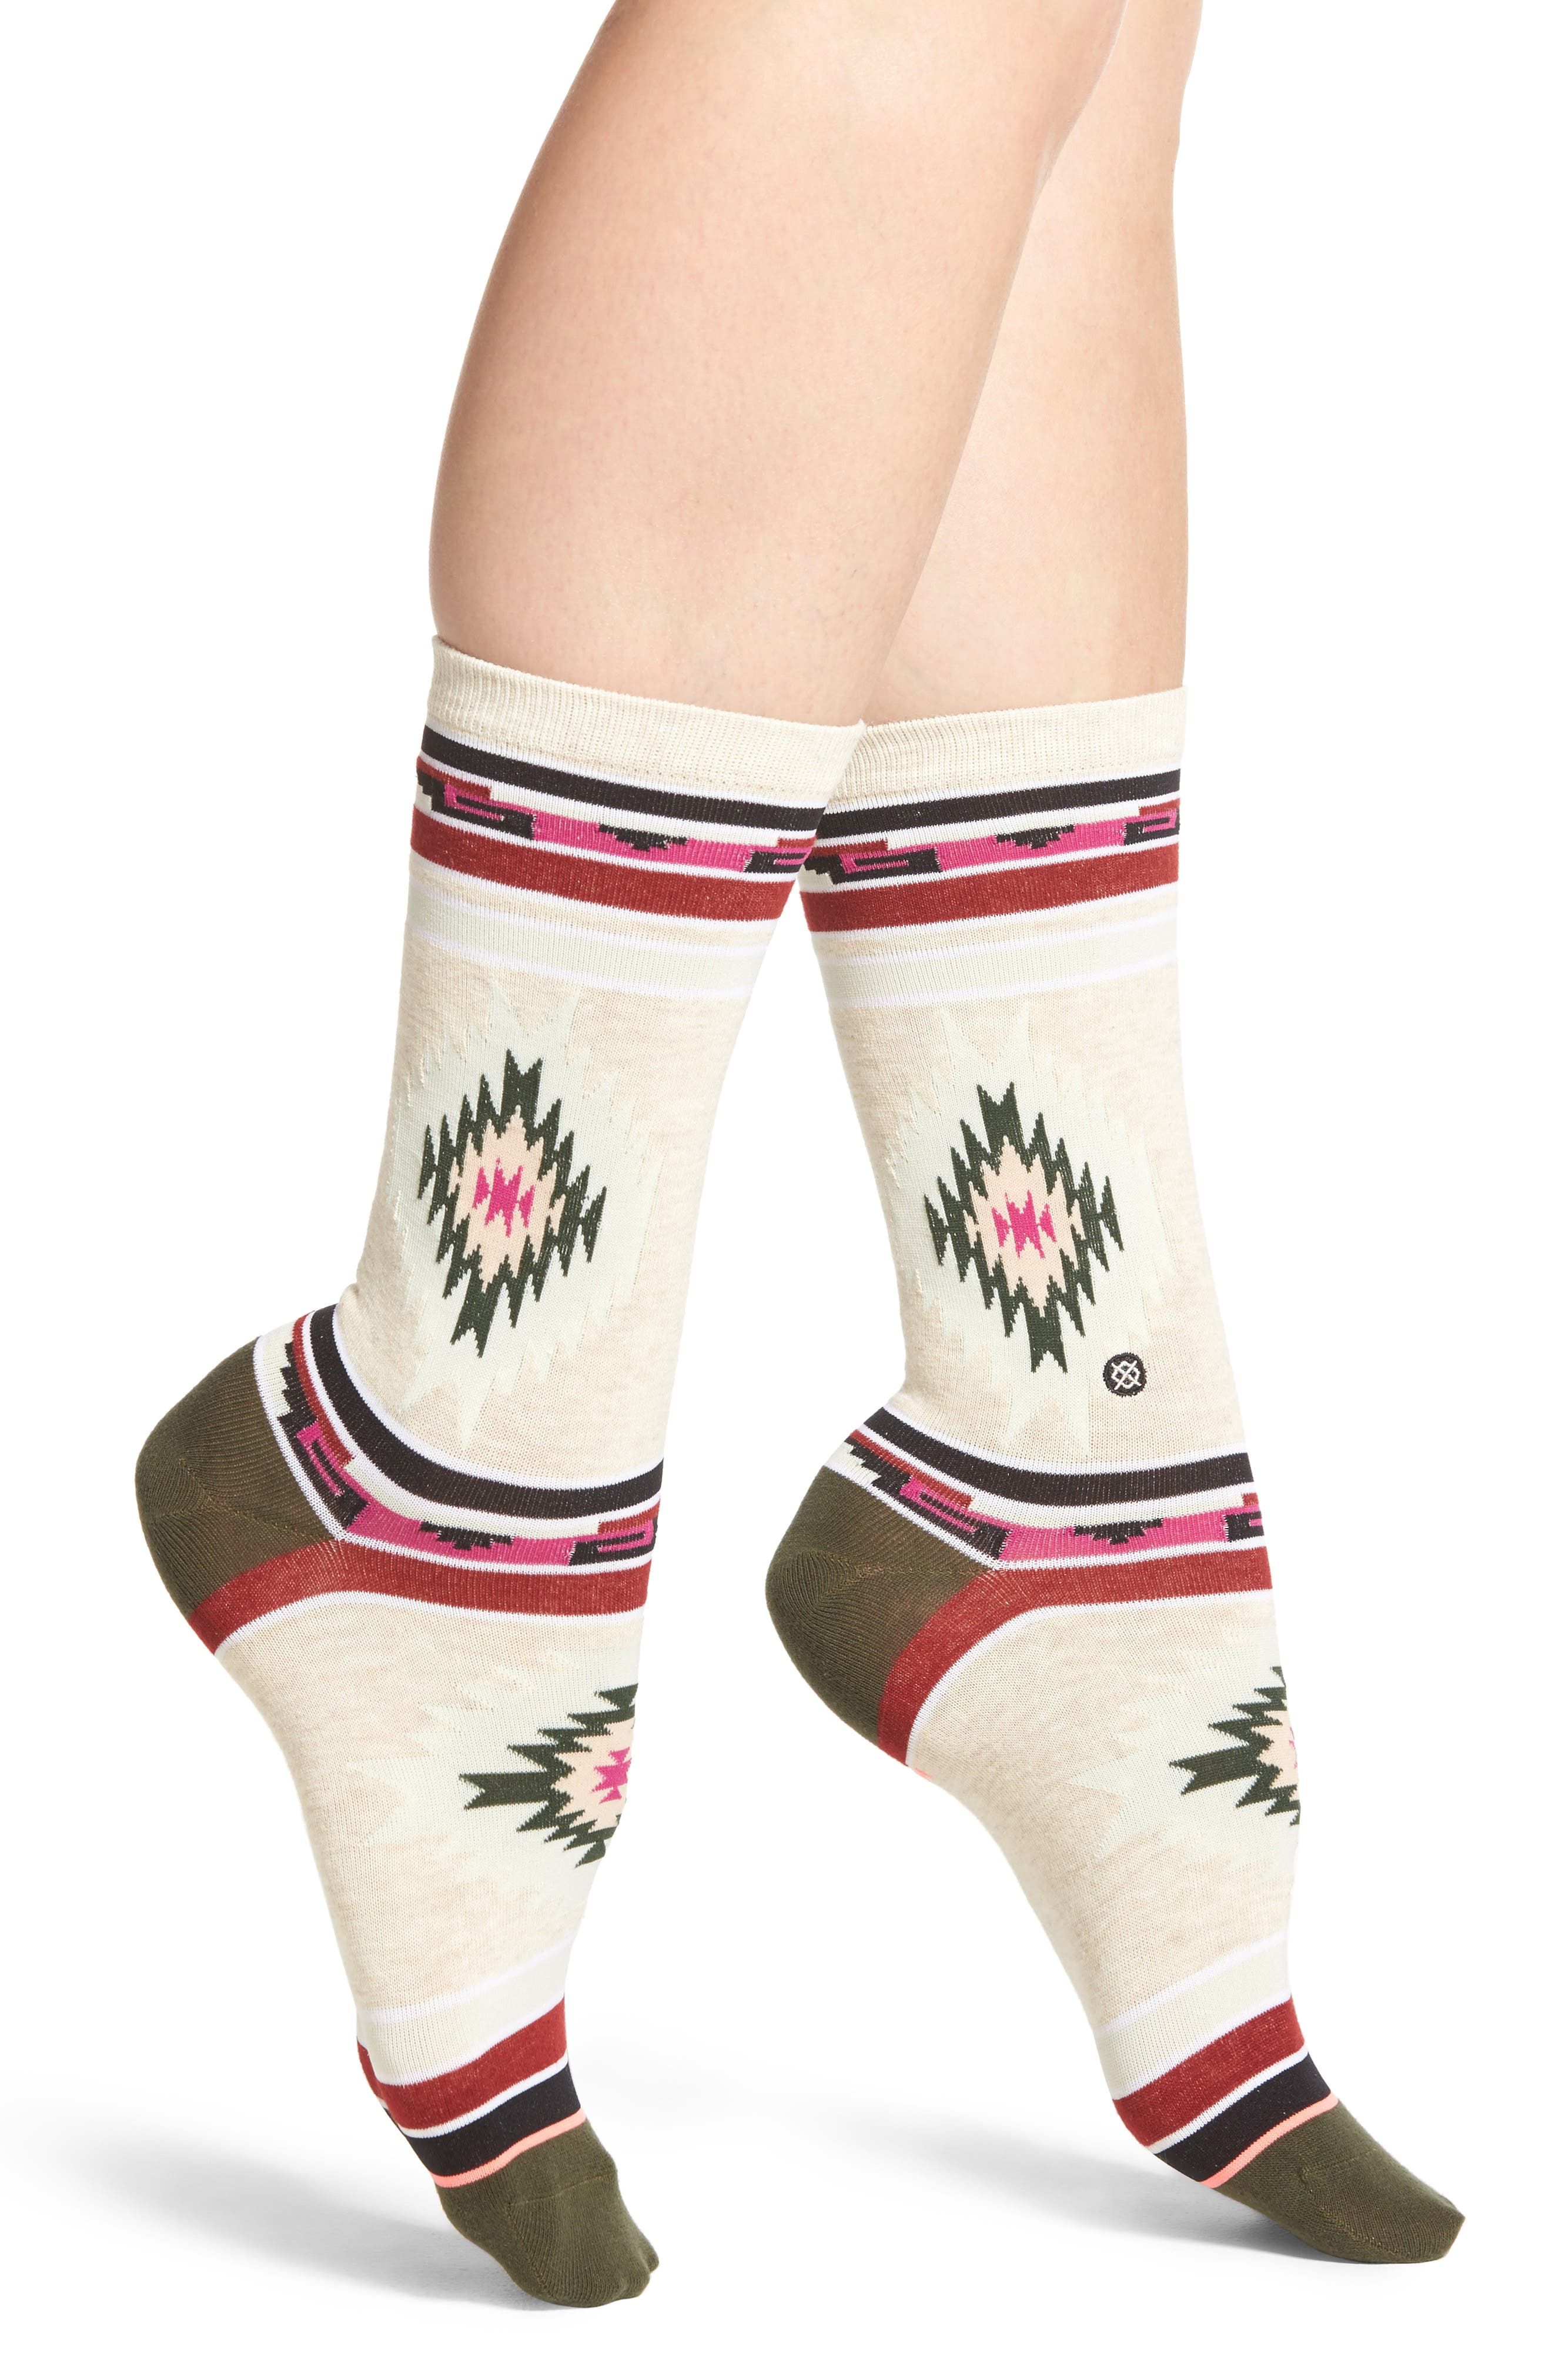 Alternate Image 1 Selected - Stance Krista Everyday Crew Socks